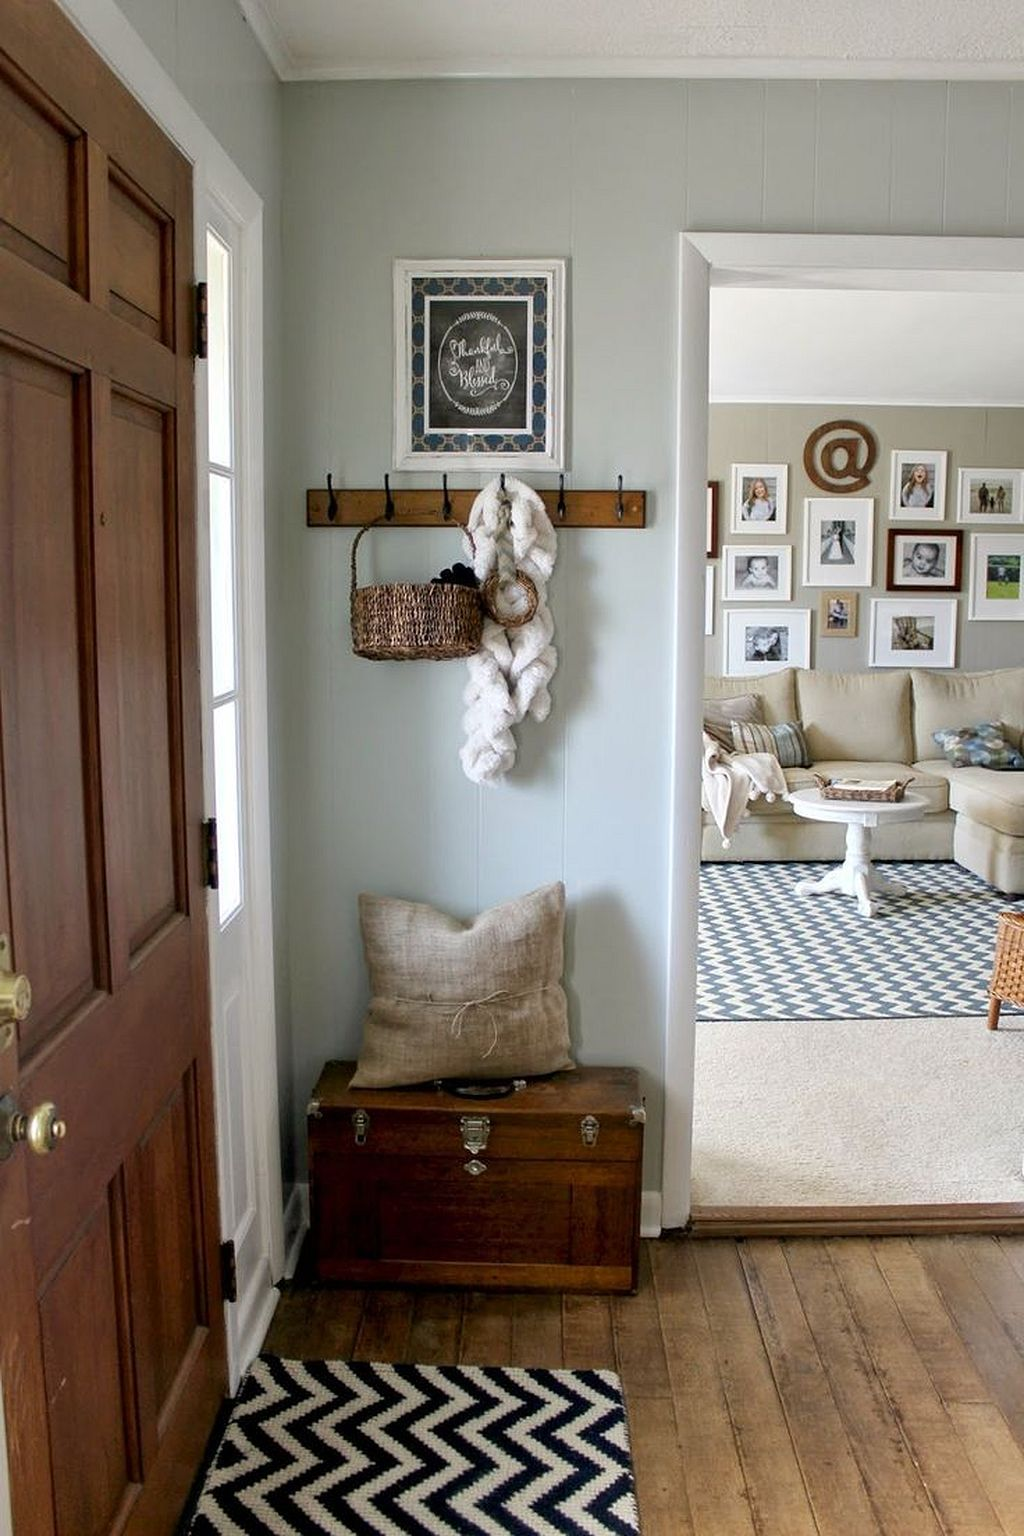 50 Awesome Small Entryway Ideas For Small Space With Decorating Ideas Farmhouse Decor Living Room Farm House Living Room Rustic Farmhouse Living Room Living room entryway ideas